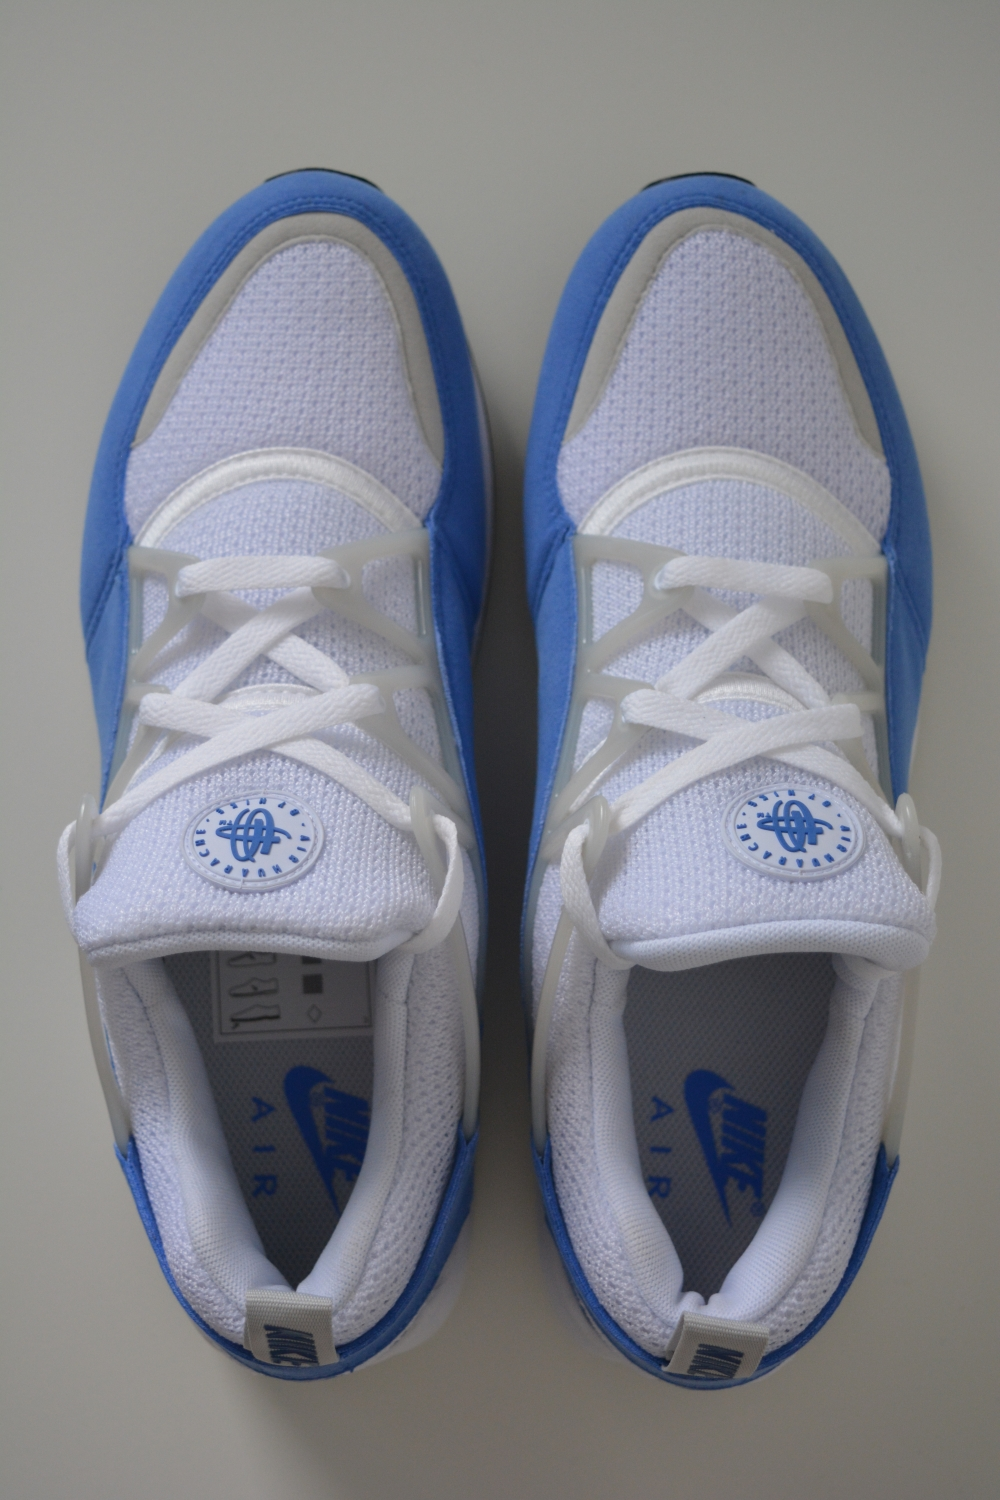 Huarache light 017